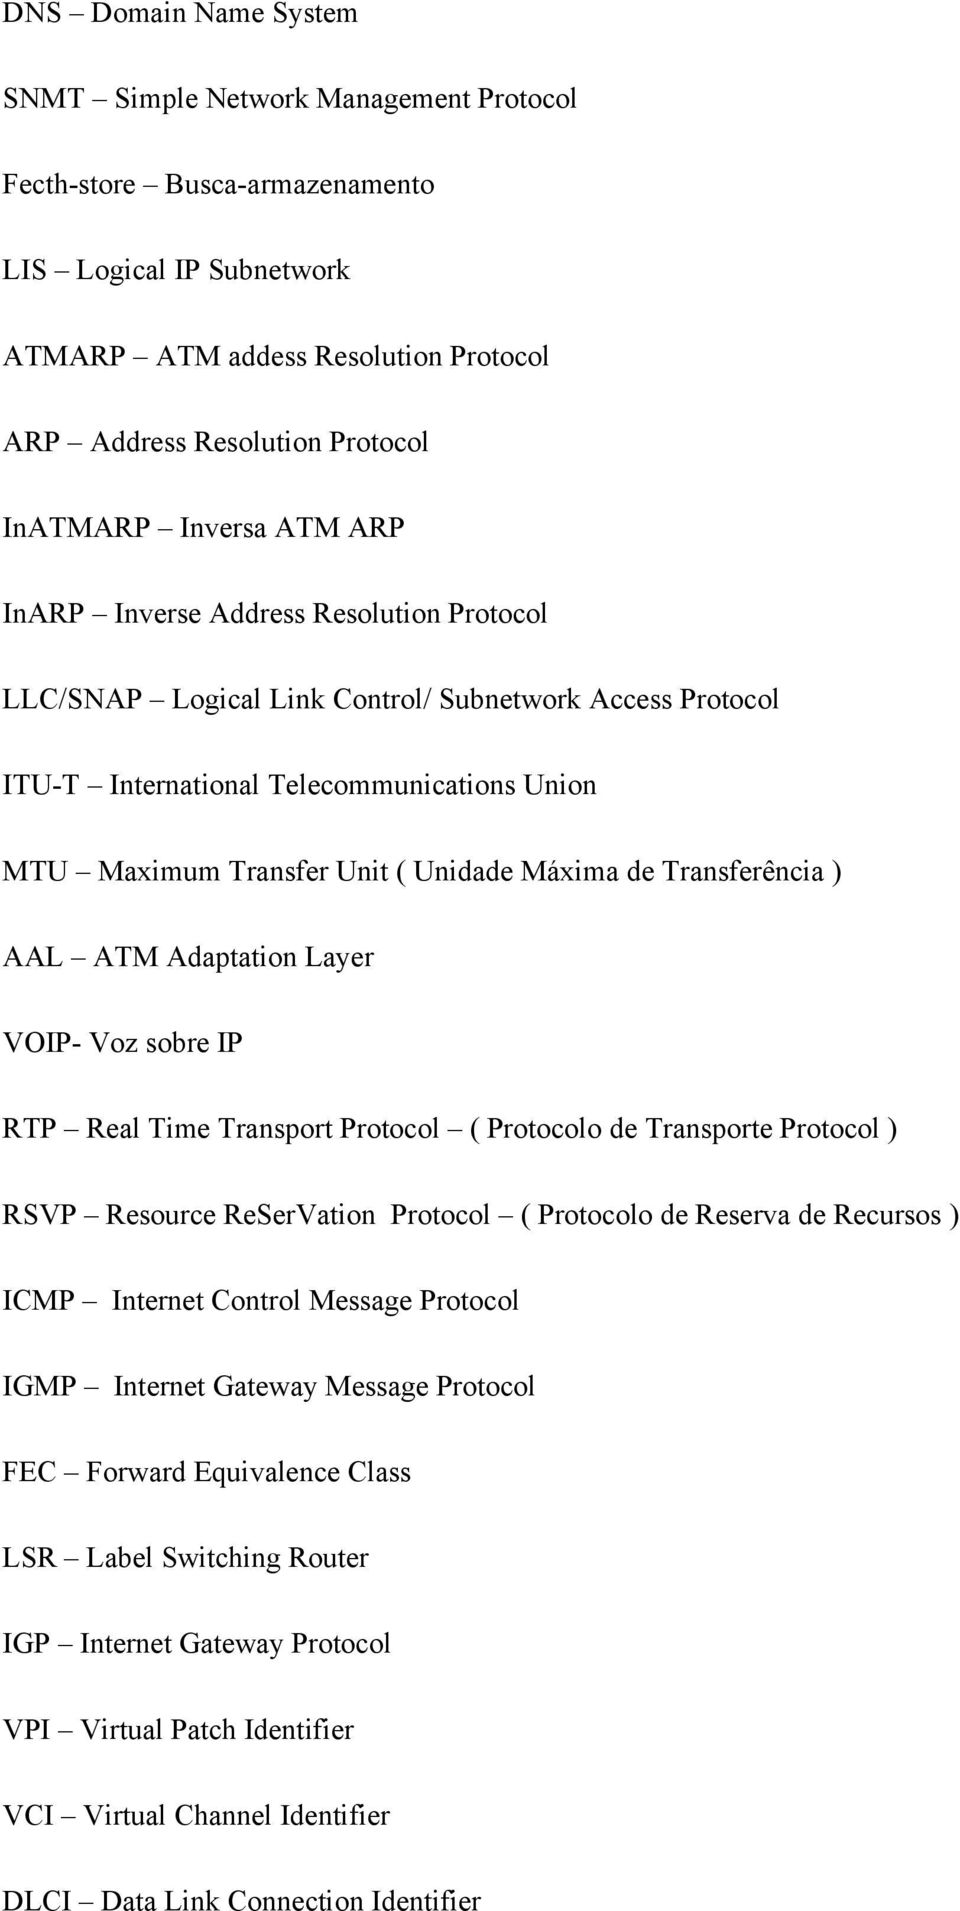 Máxima de Transferência ) AAL ATM Adaptation Layer VOIP- Voz sobre IP RTP Real Time Transport Protocol ( Protocolo de Transporte Protocol ) RSVP Resource ReSerVation Protocol ( Protocolo de Reserva